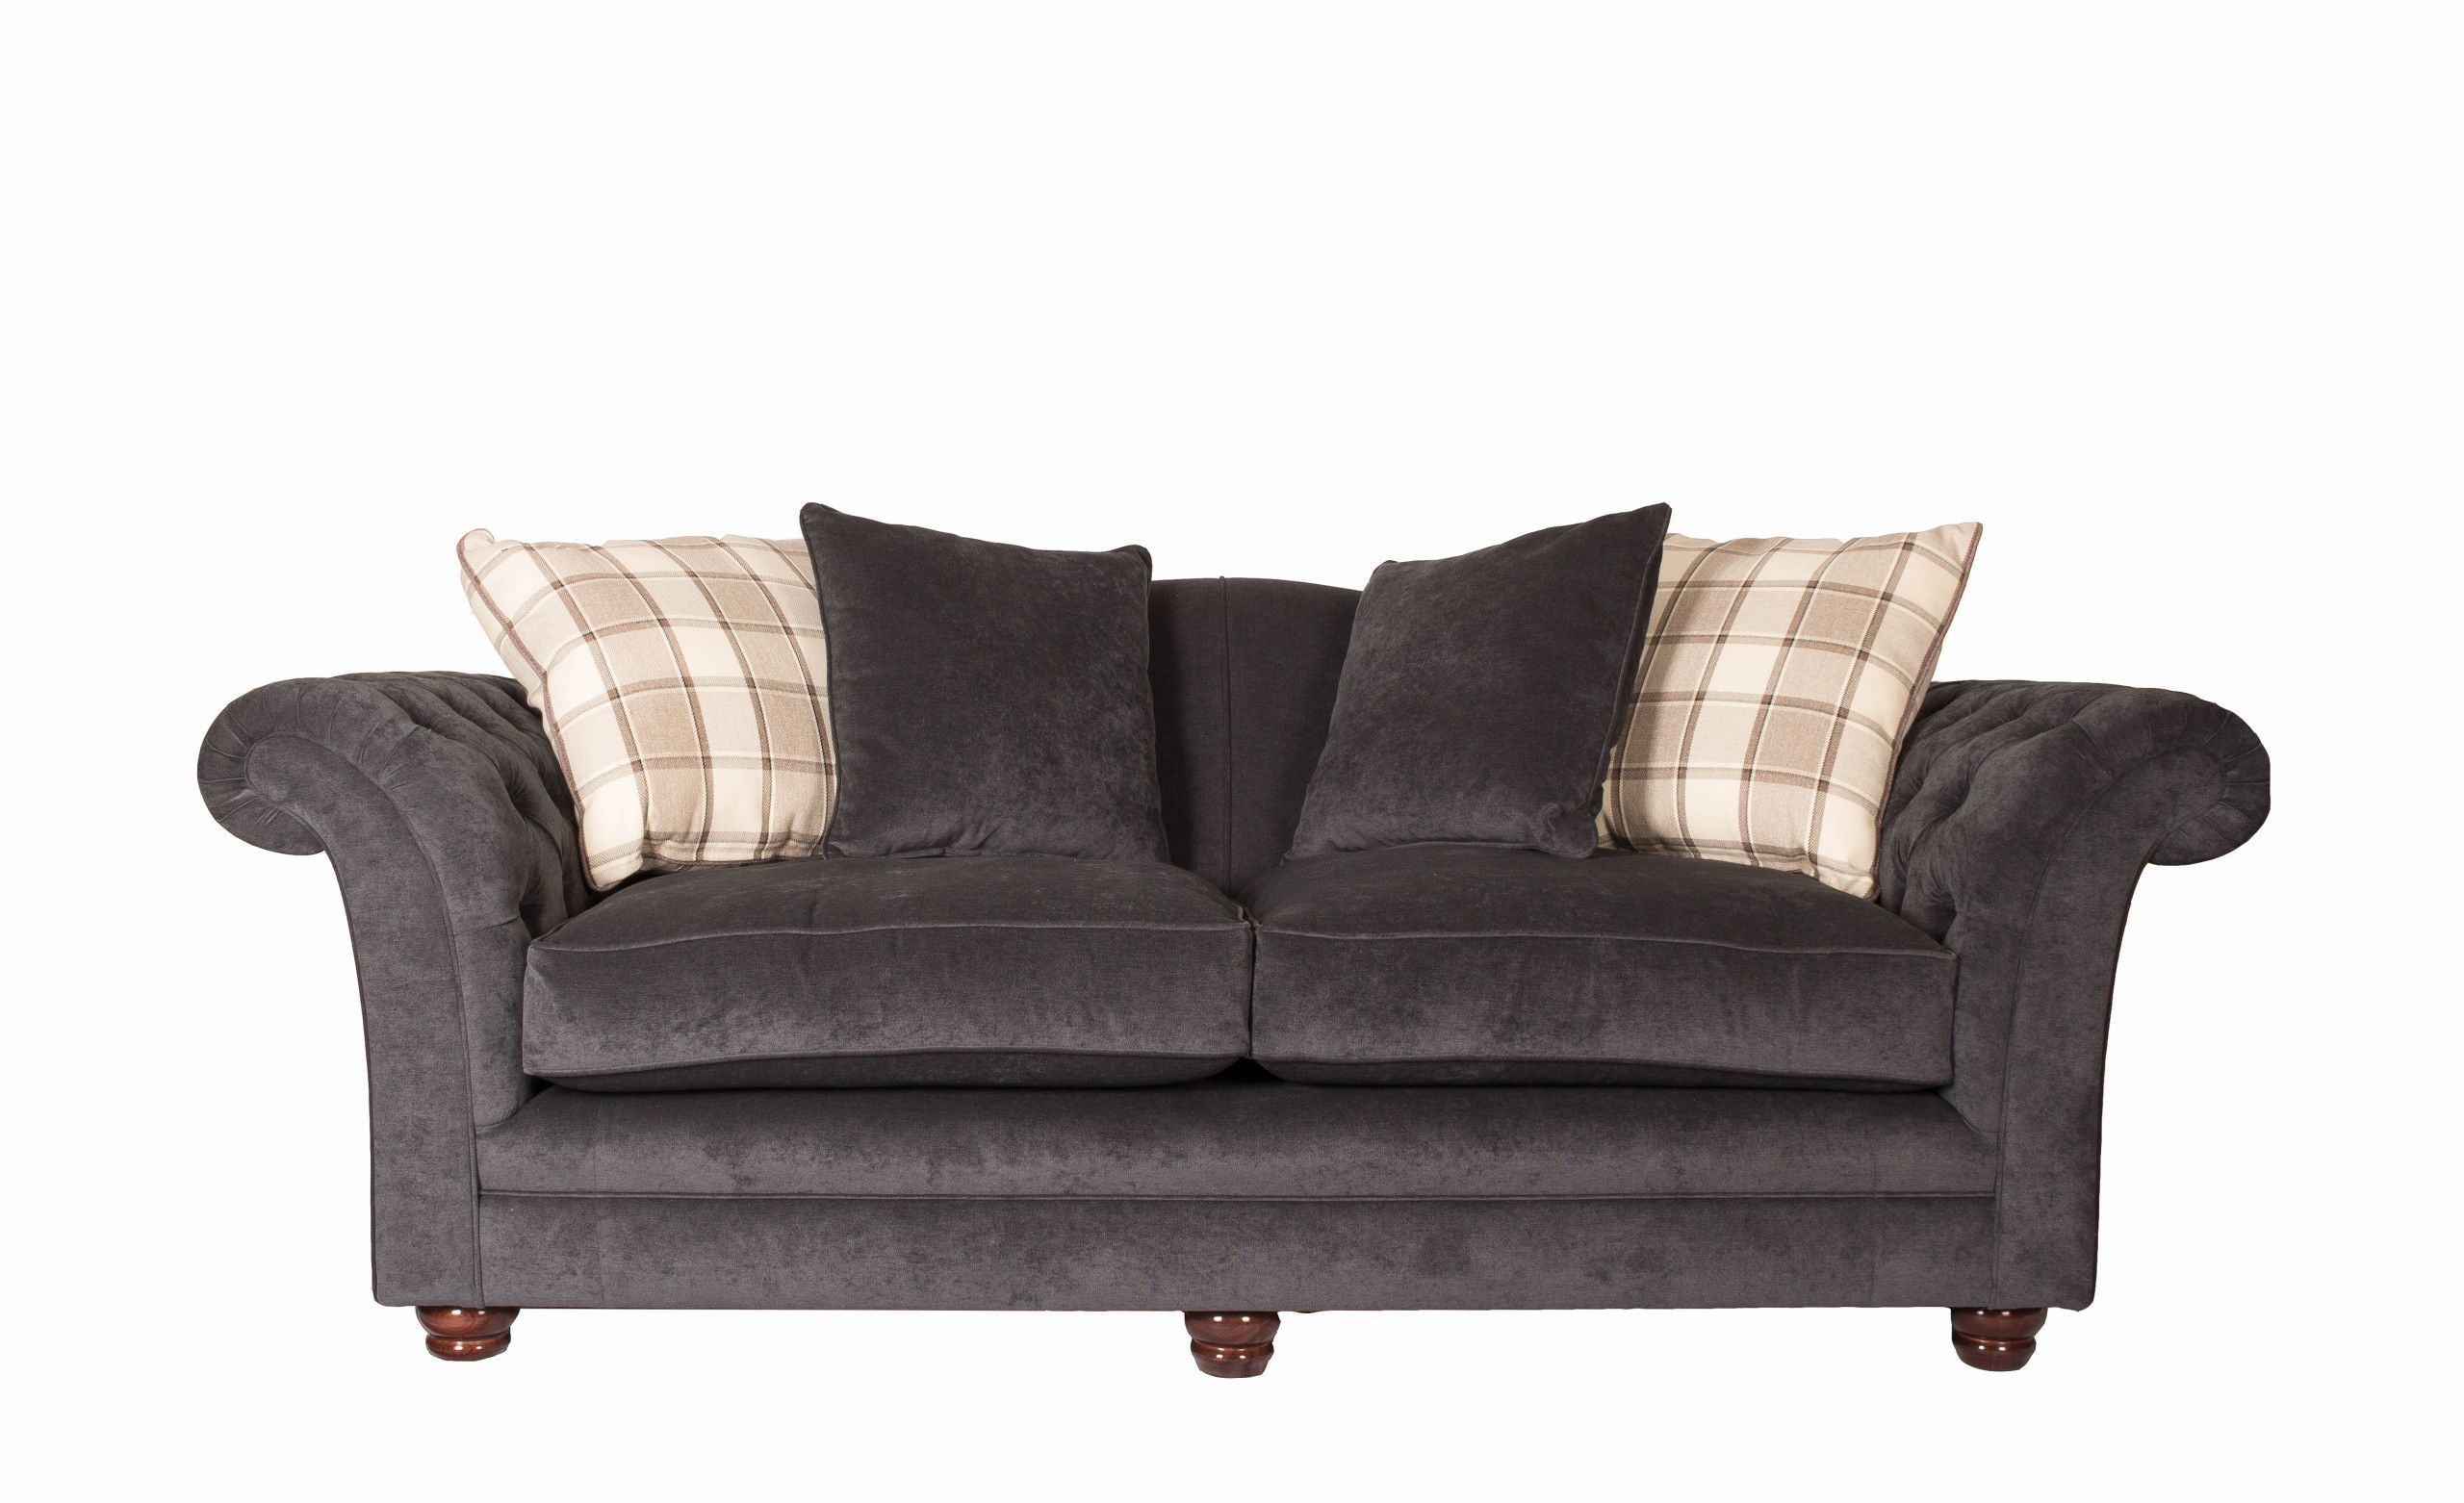 Made To Measure Sofas Manchester Bespoke Sofas Sofa Design Stockport Manchester